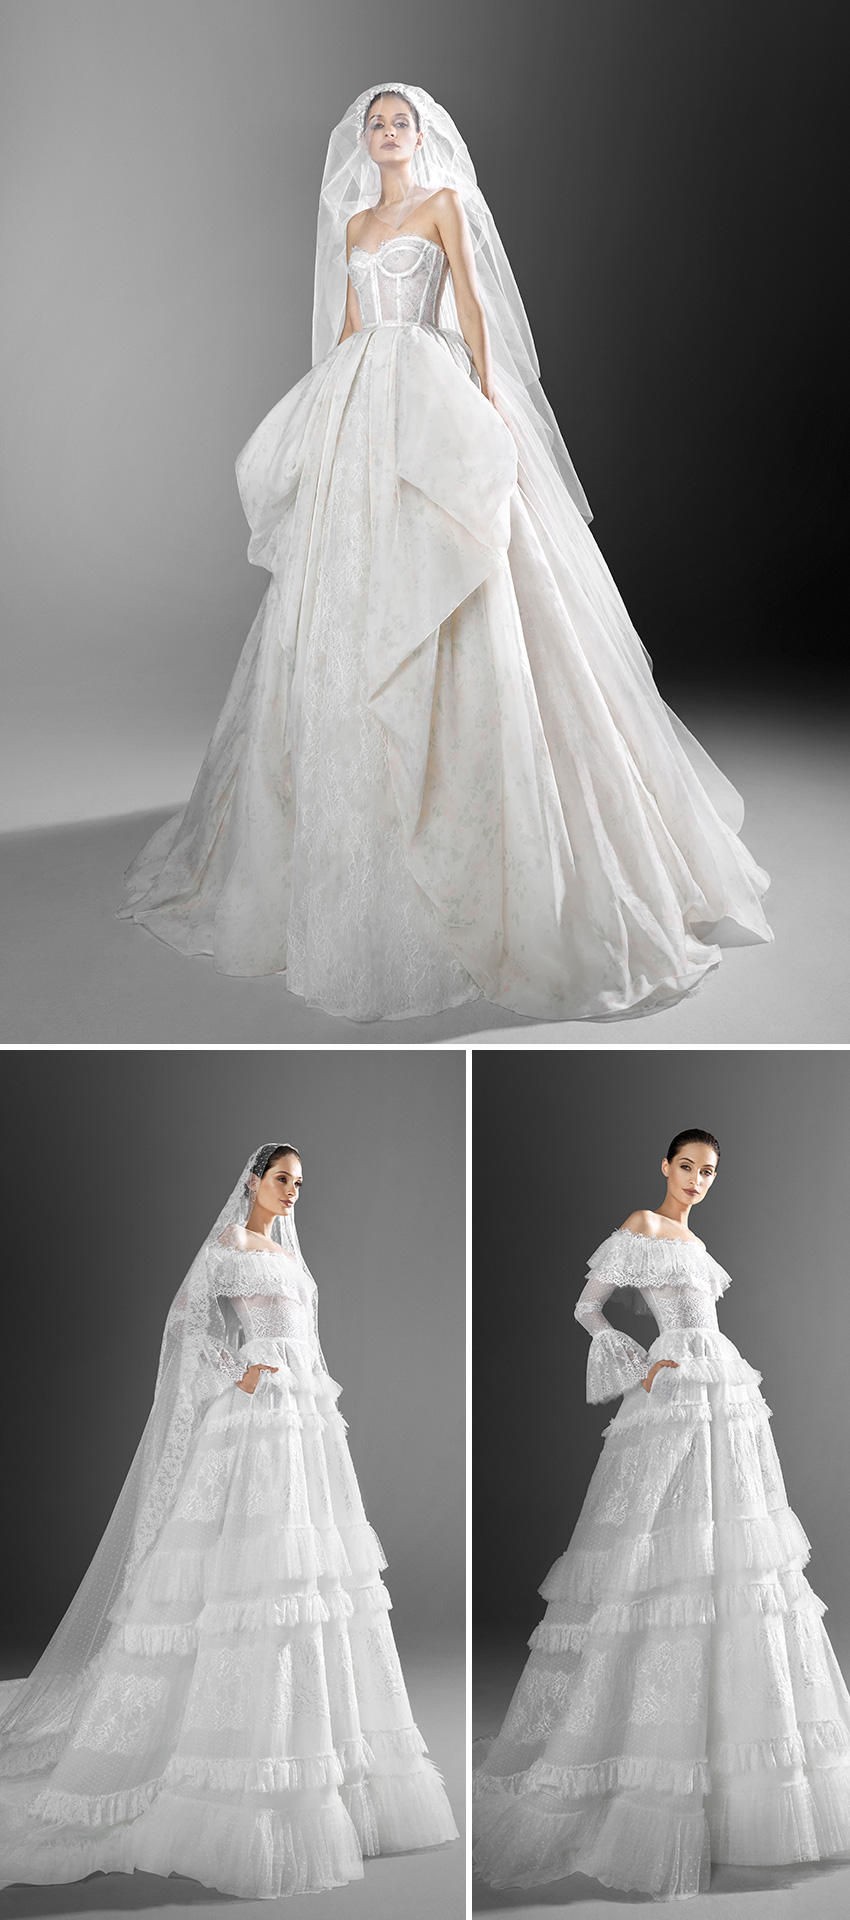 Zuhair Murad Spring 2021 bridal collection includes sensual silhouettes in luxurious looks featured in Perfect Wedding Magazine